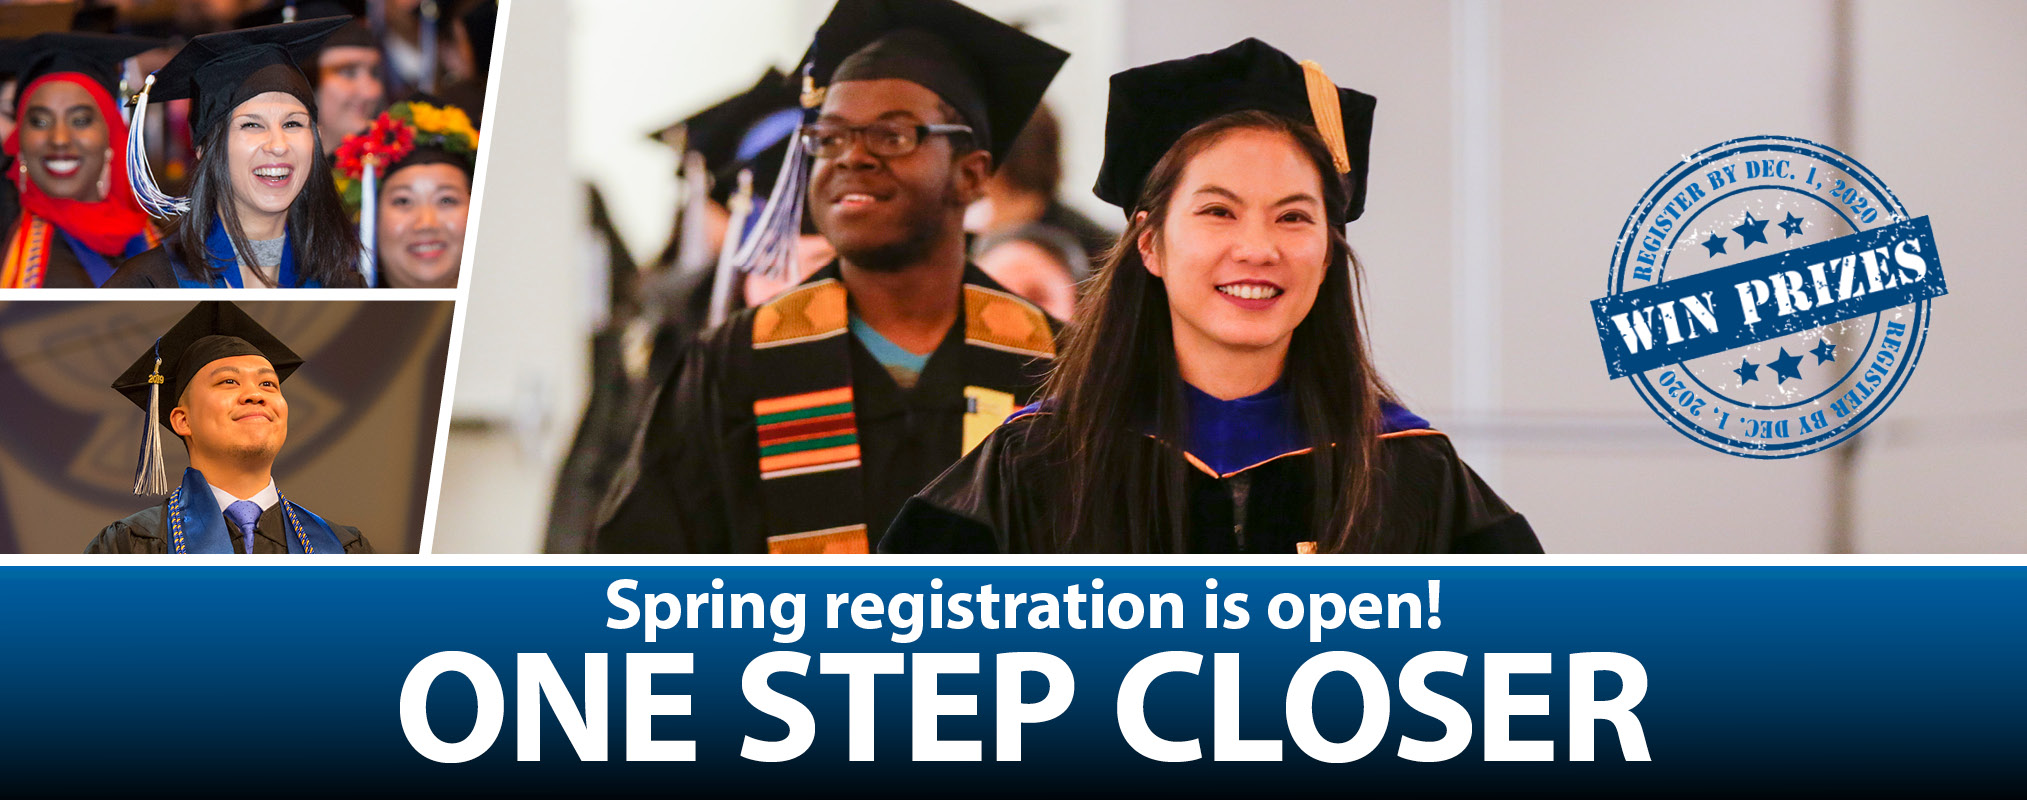 ONE STEP CLOSER, Spring registration is open! three photographs of happy graduates with a stamp saying WIN PRIZES, register before December 1, 2020